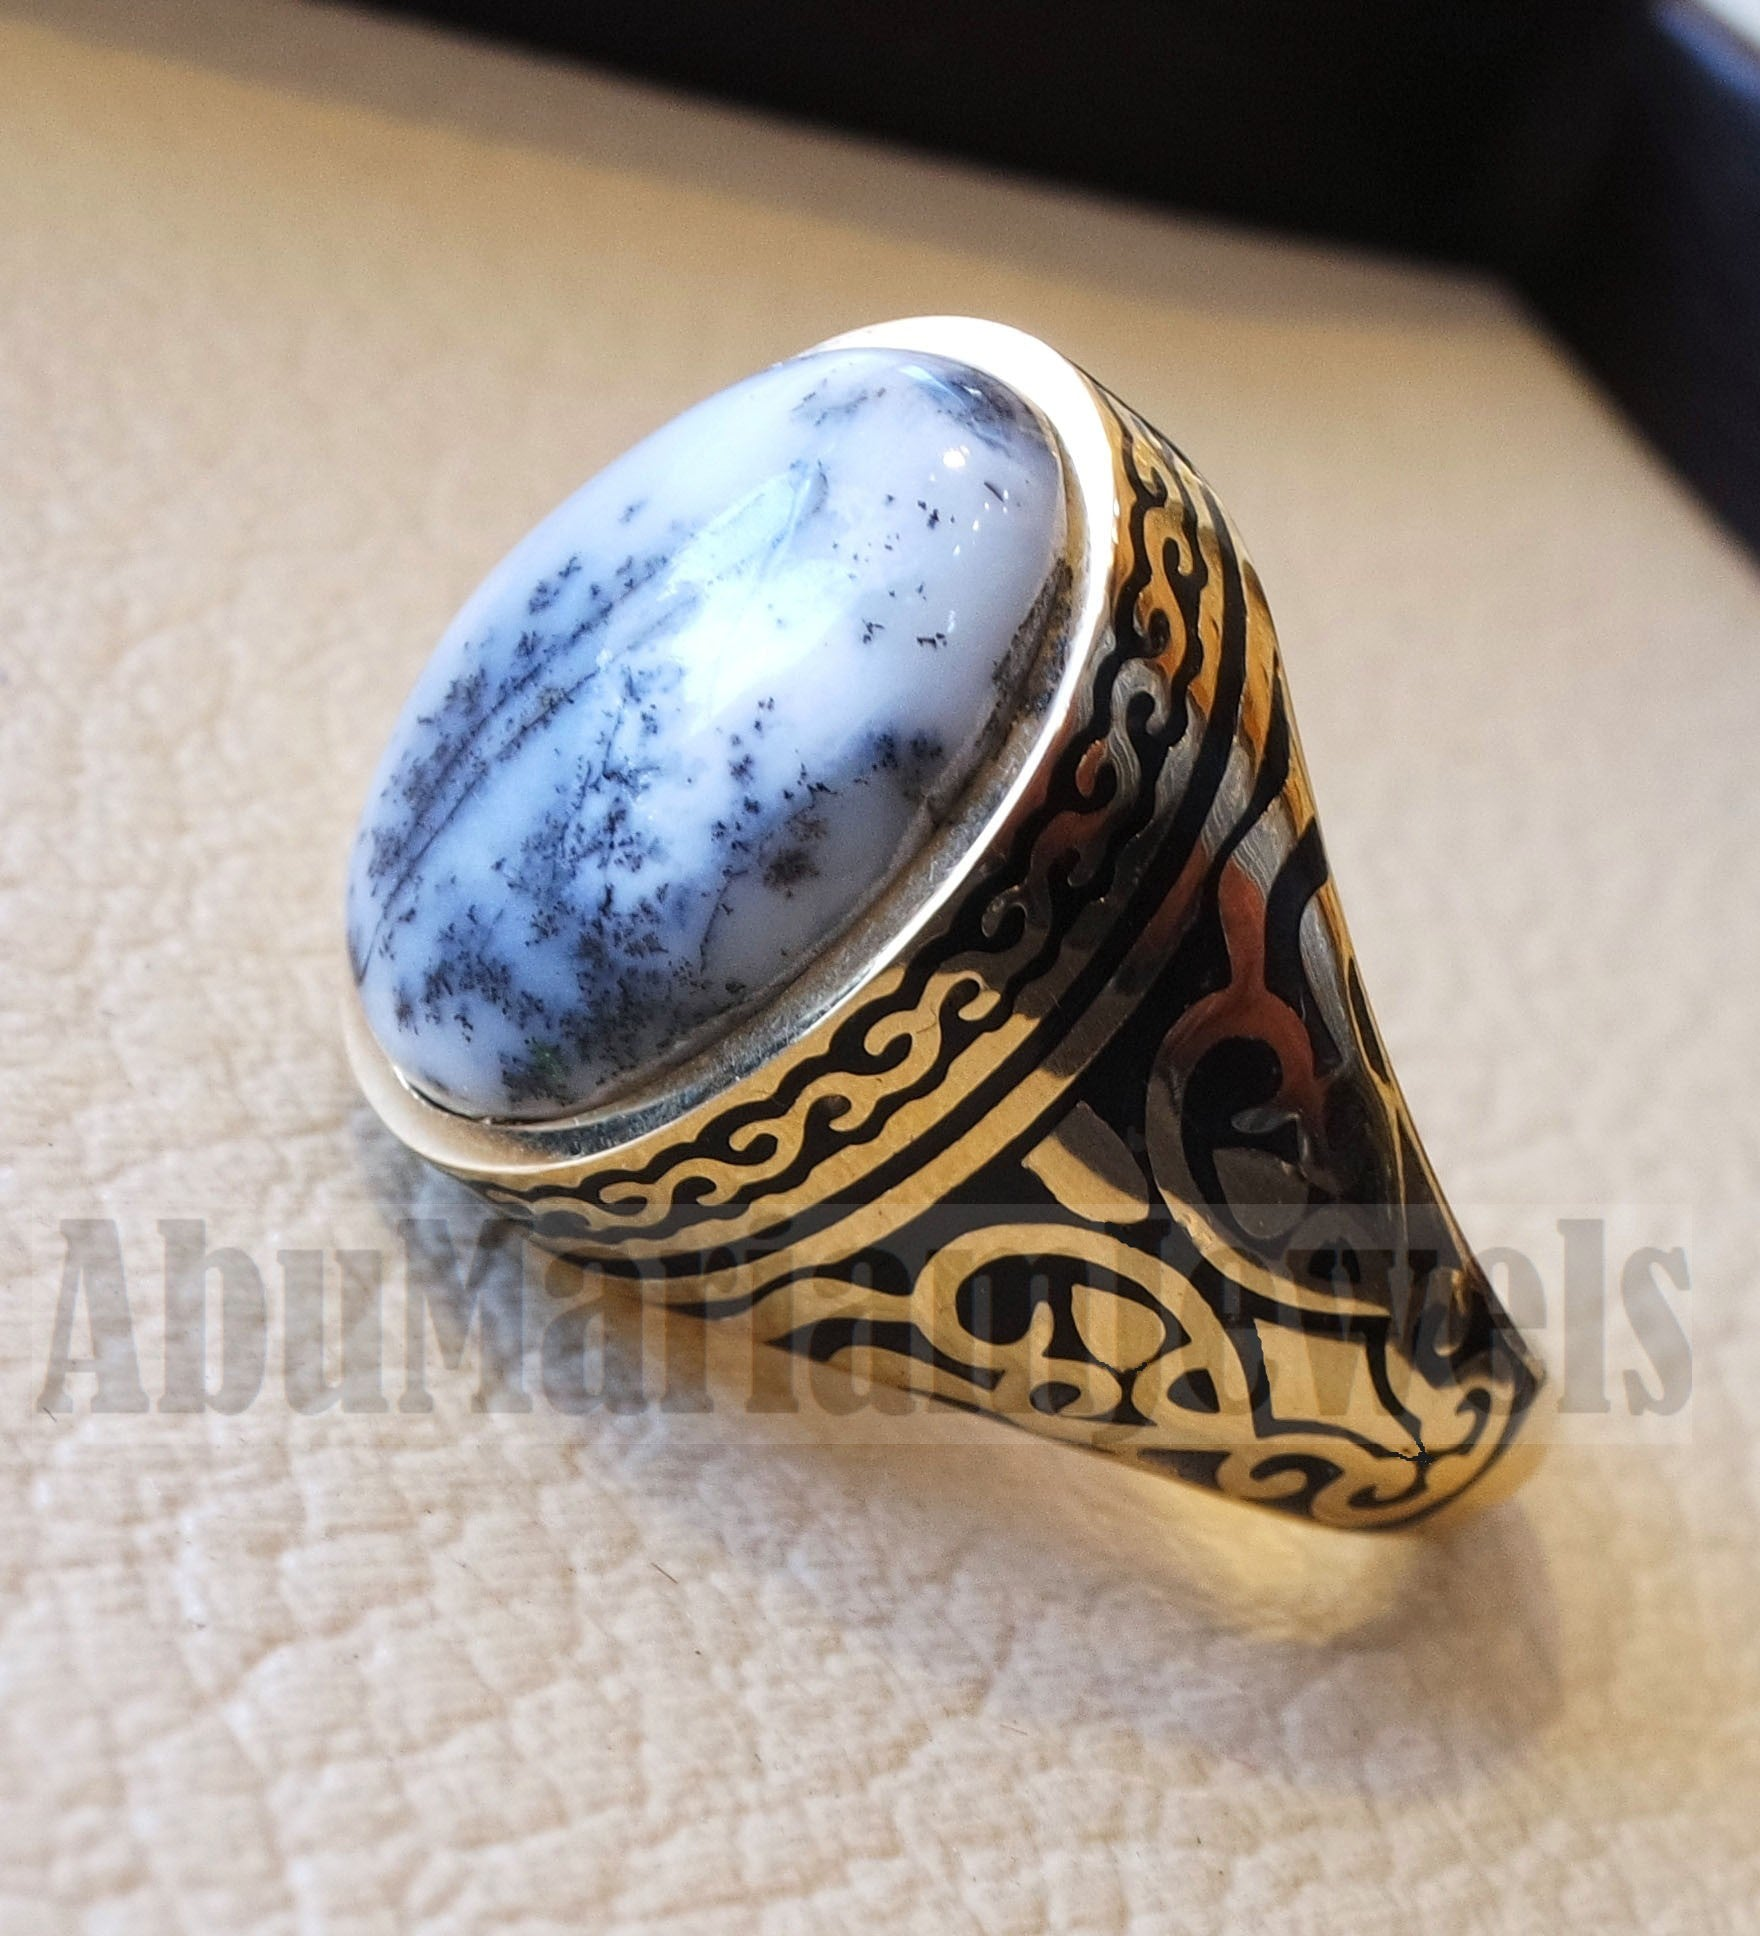 18k yellow gold men ring dendritic opal cabochon high quality natural stone all sizes Ottoman signet style fine jewelry fast shipping